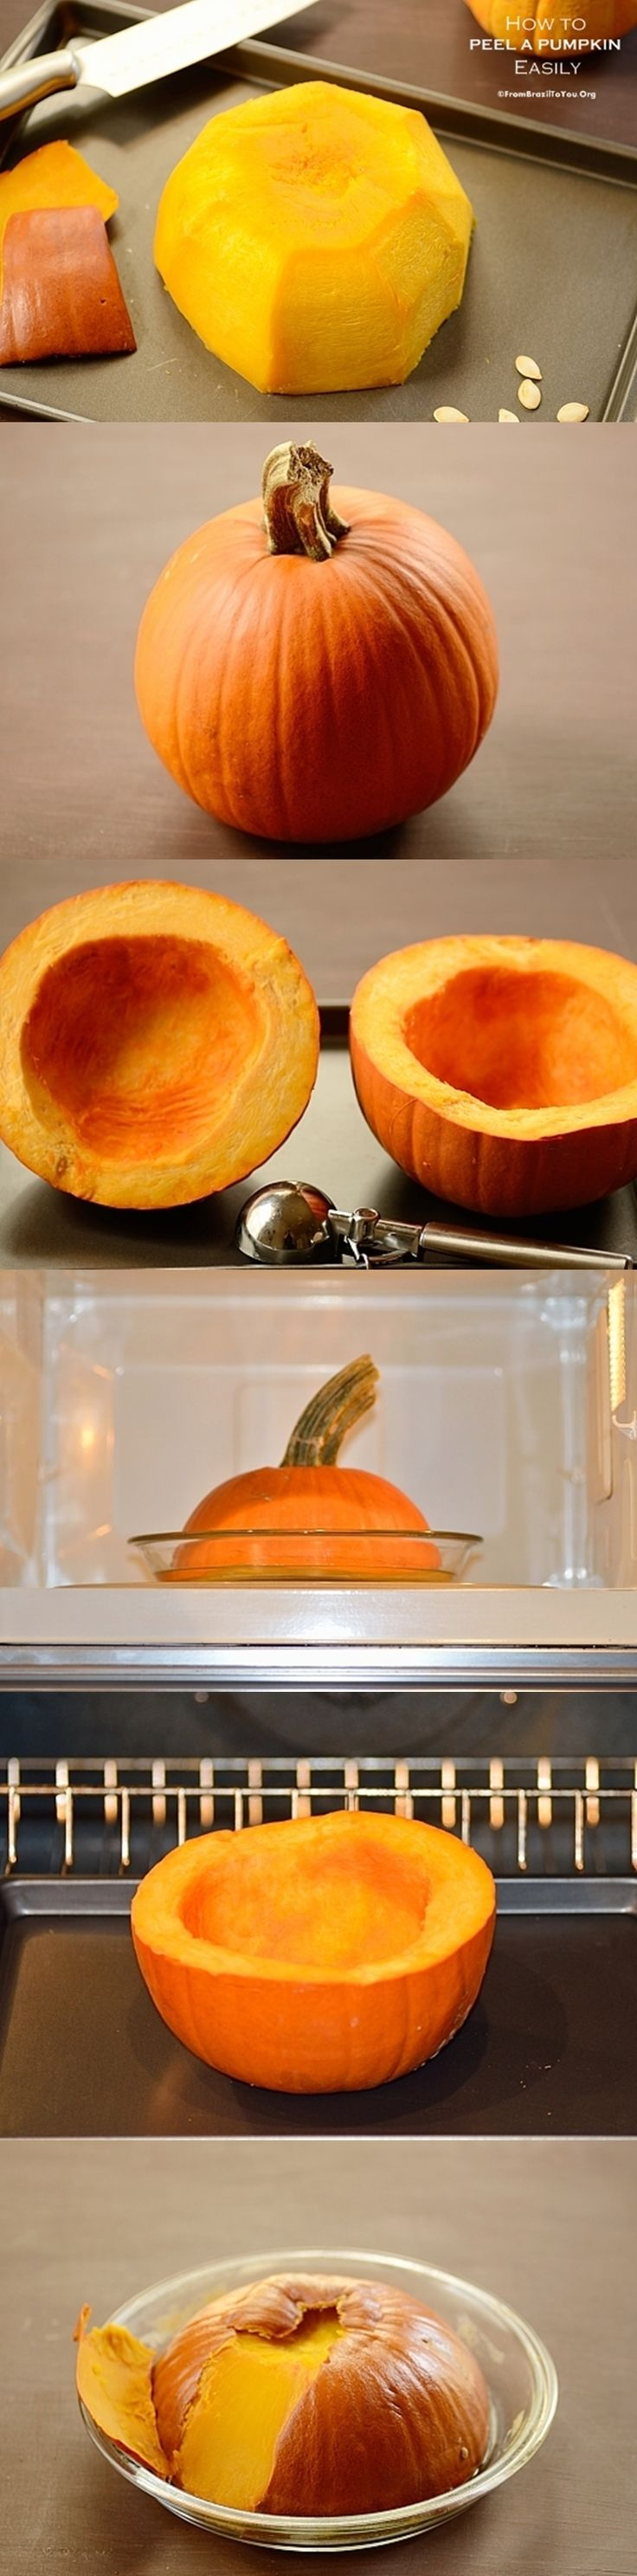 How to Peel a pumpkin easily for cooking... Making your life much easier.  #pumpkin #how #easy